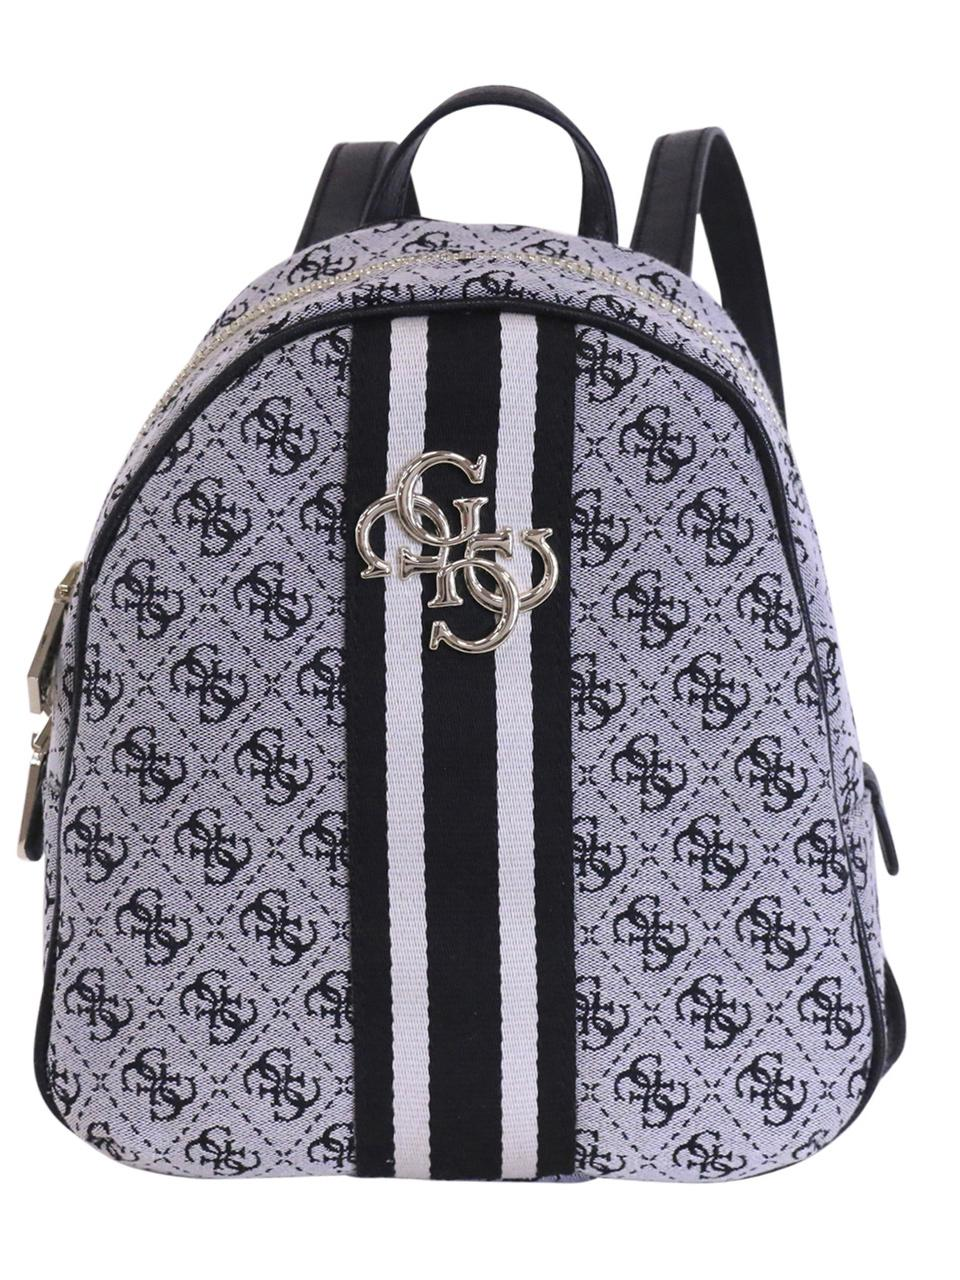 Guess Women s Guess Vintage Backpack Bag 17479345b03bd